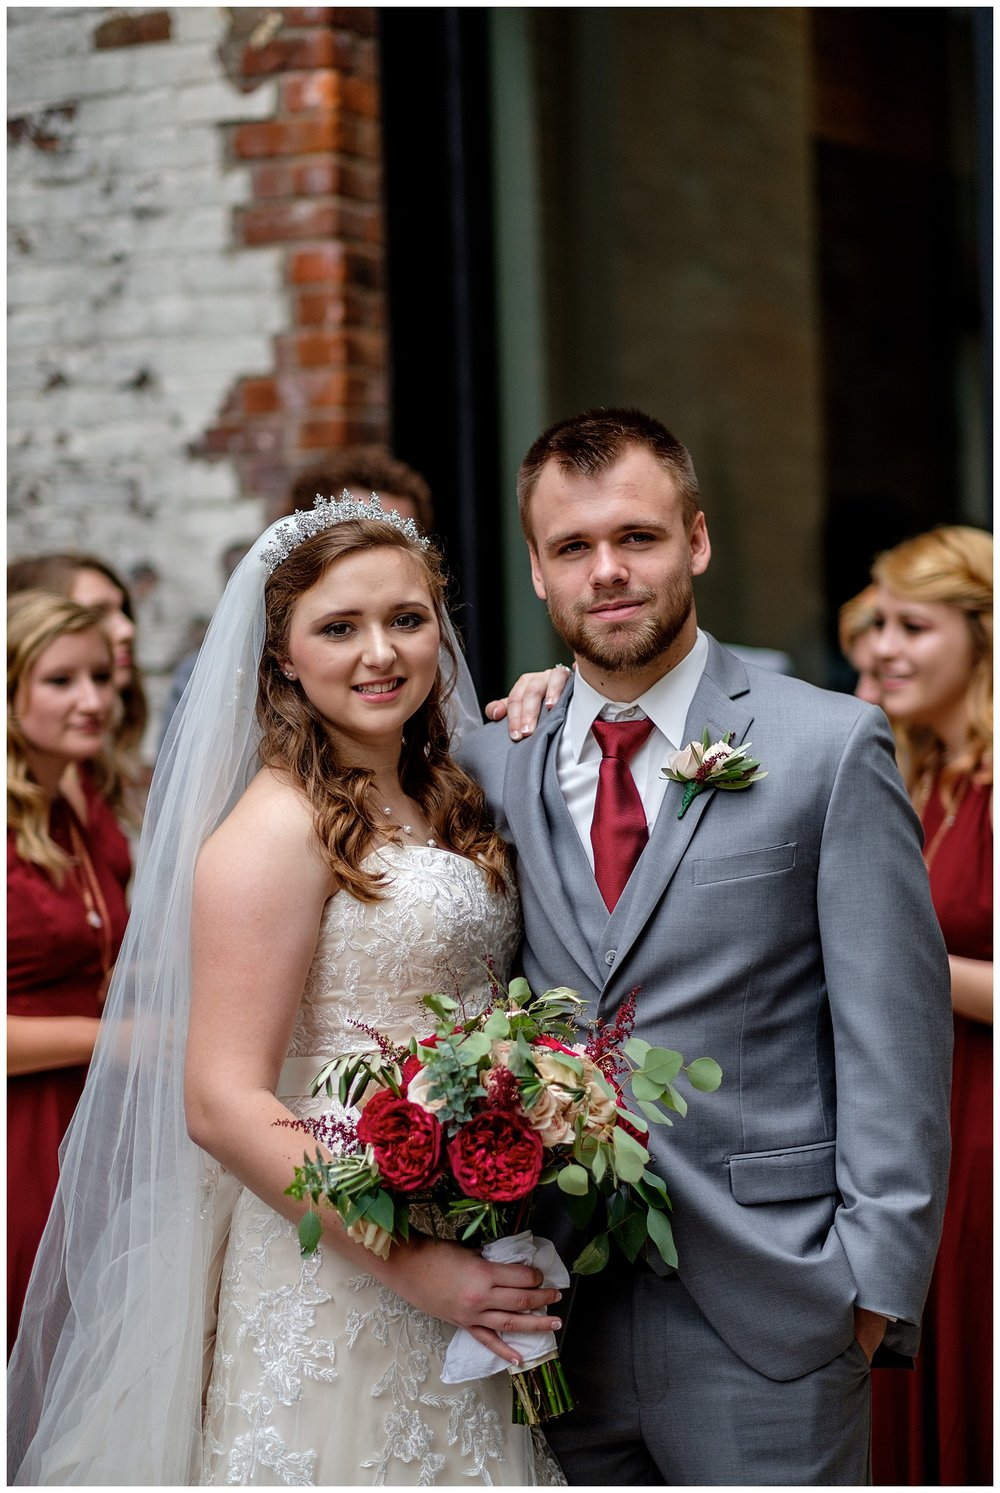 TheSmythCollective-Best-Cincinnati-Wedding-Photographer-Urban-Downtown-Covington-Wedding-14.jpg